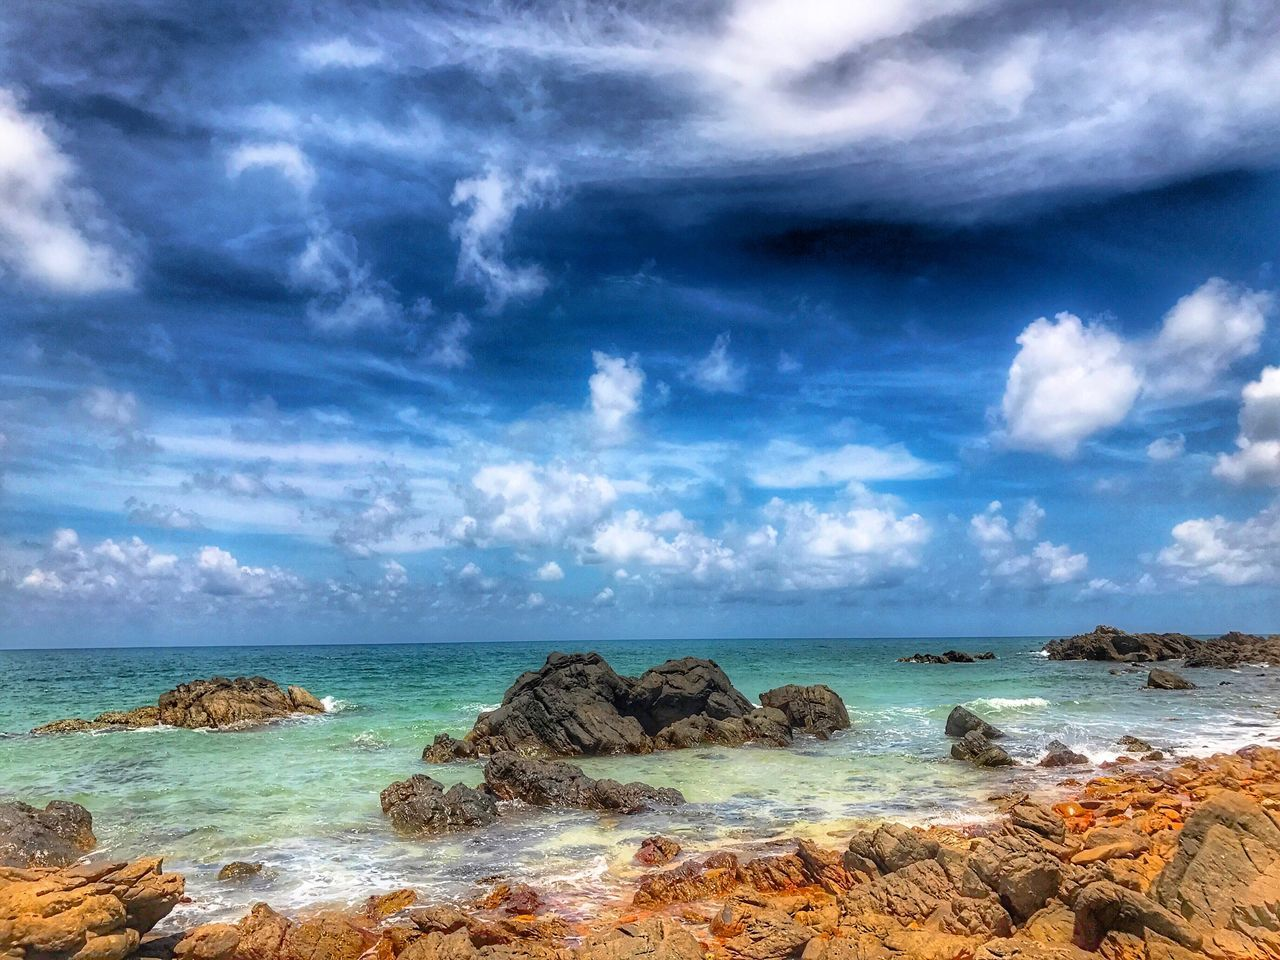 sea, sky, horizon over water, cloud - sky, beauty in nature, scenics, nature, water, rock - object, outdoors, tranquil scene, day, tranquility, no people, blue